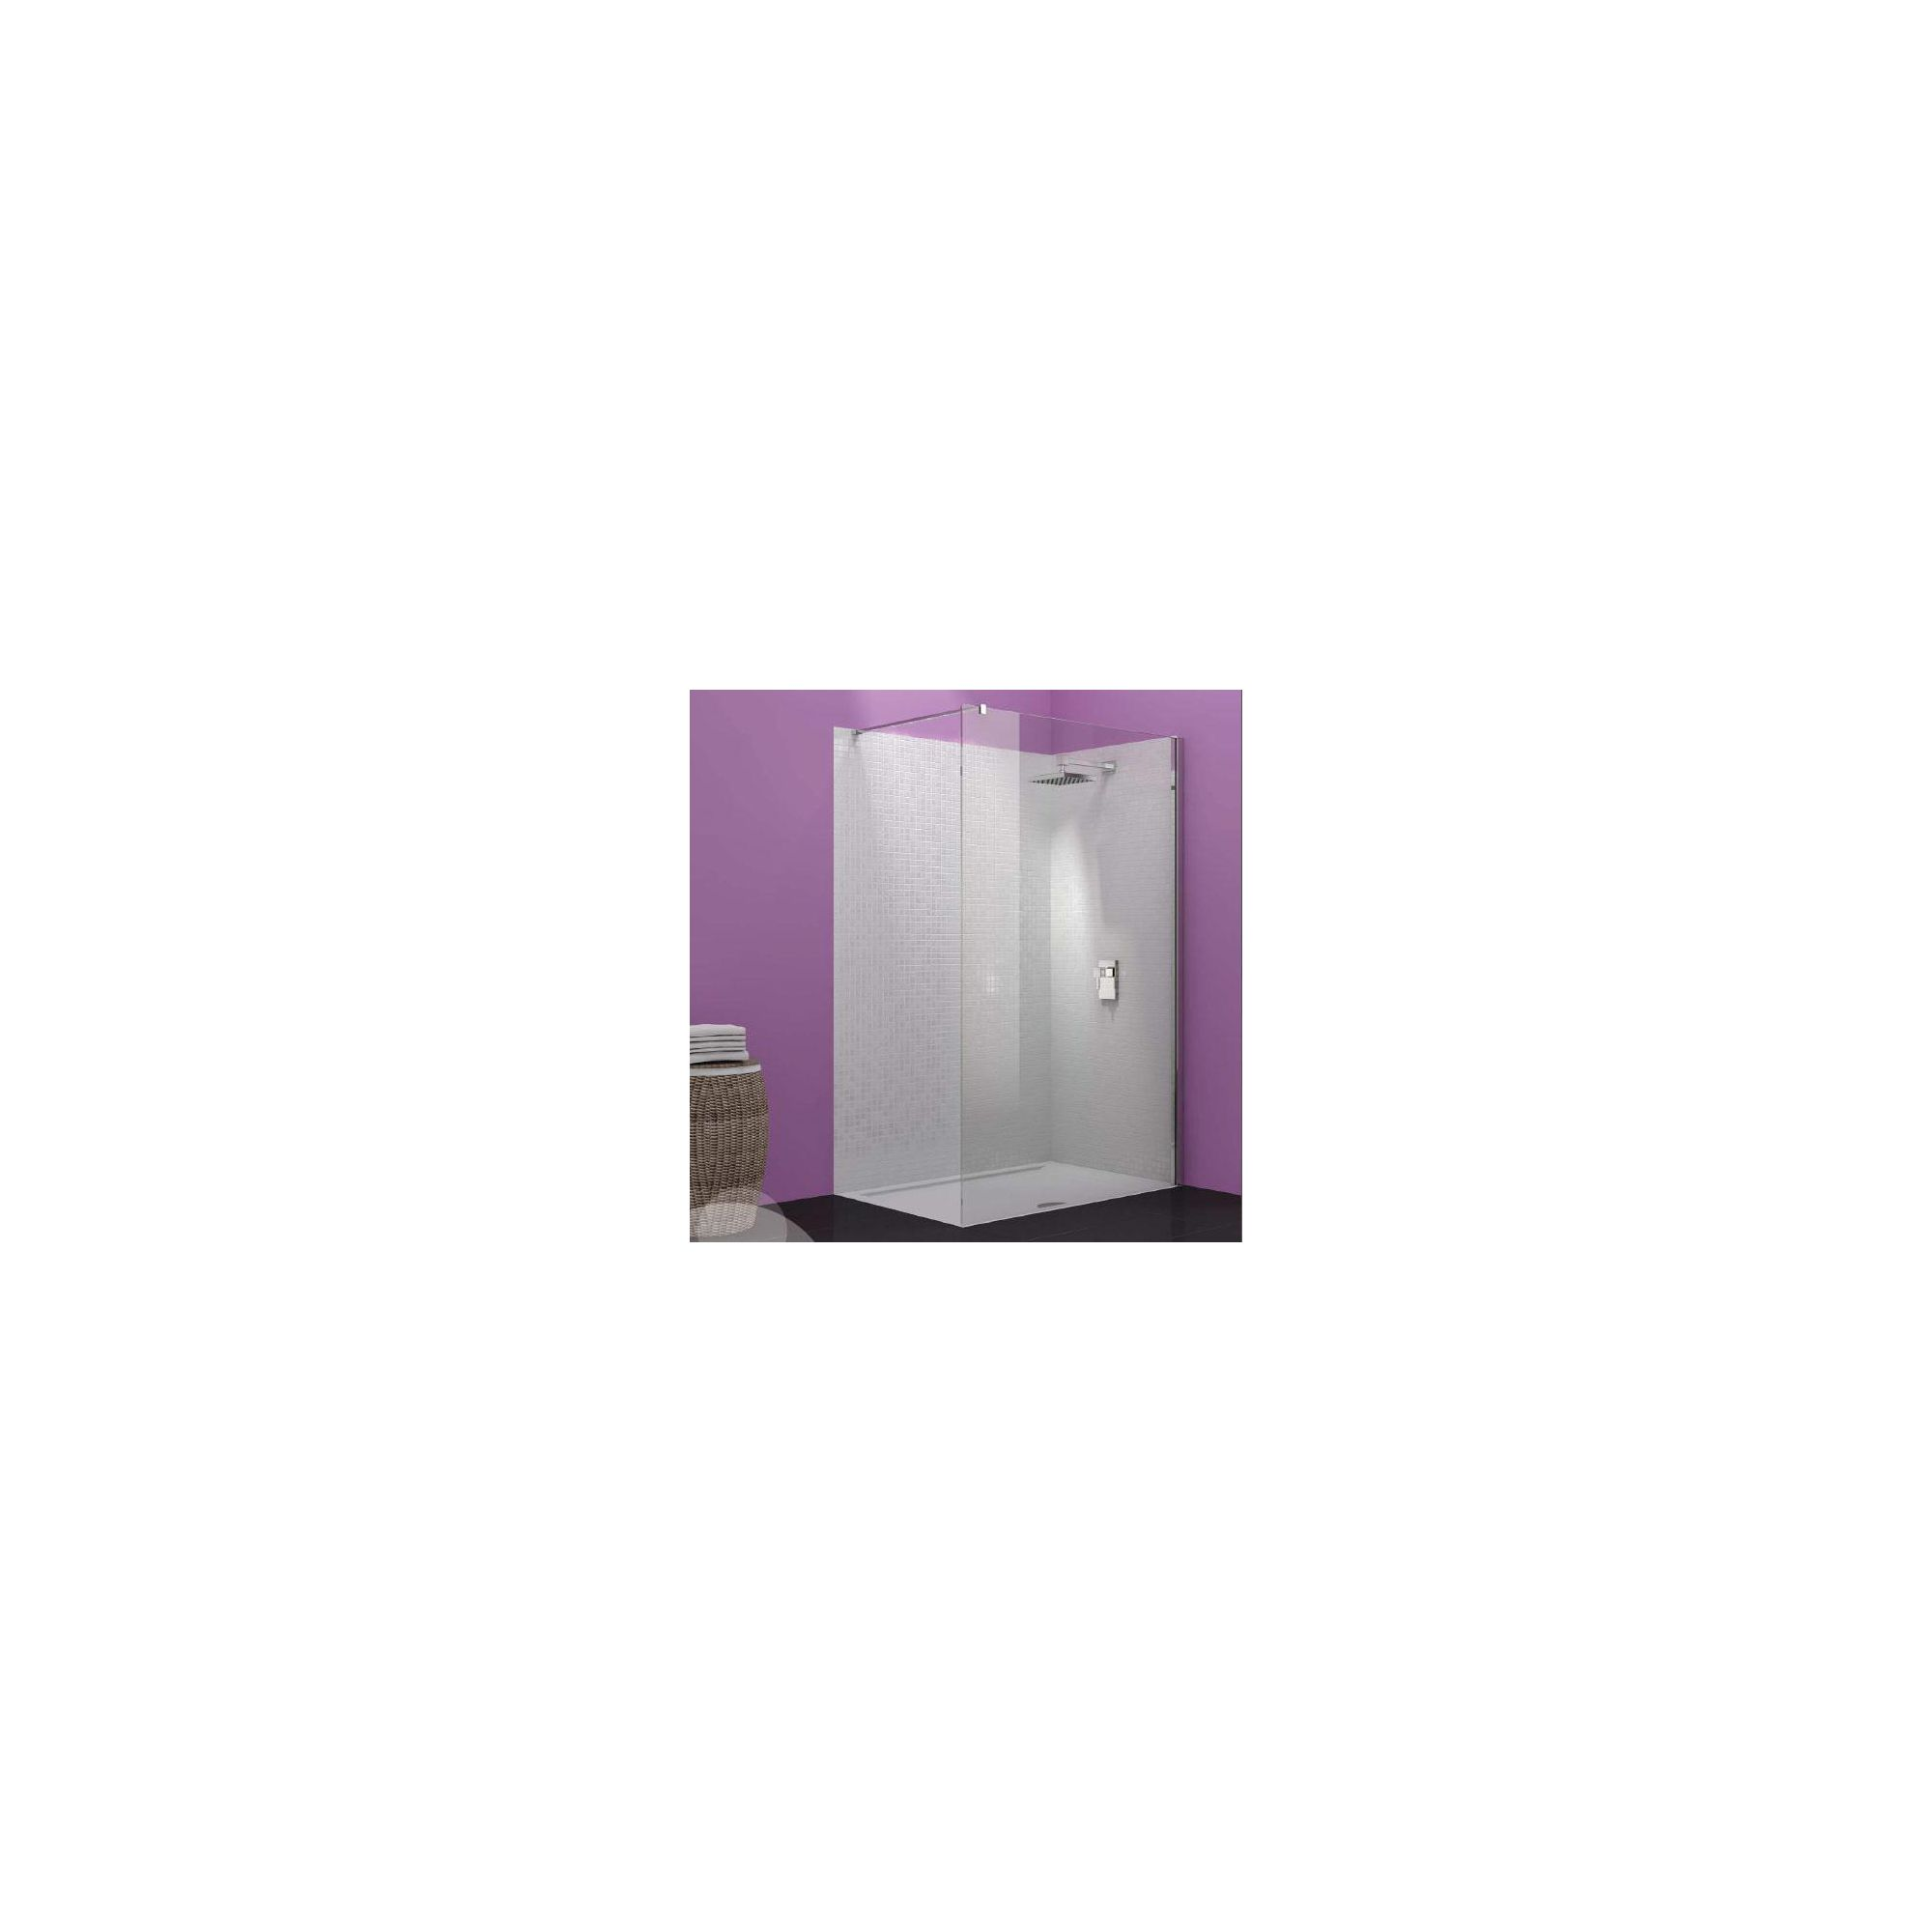 Merlyn Vivid Ten Wet Room Shower Glass Panel 1200mm Wide at Tesco Direct